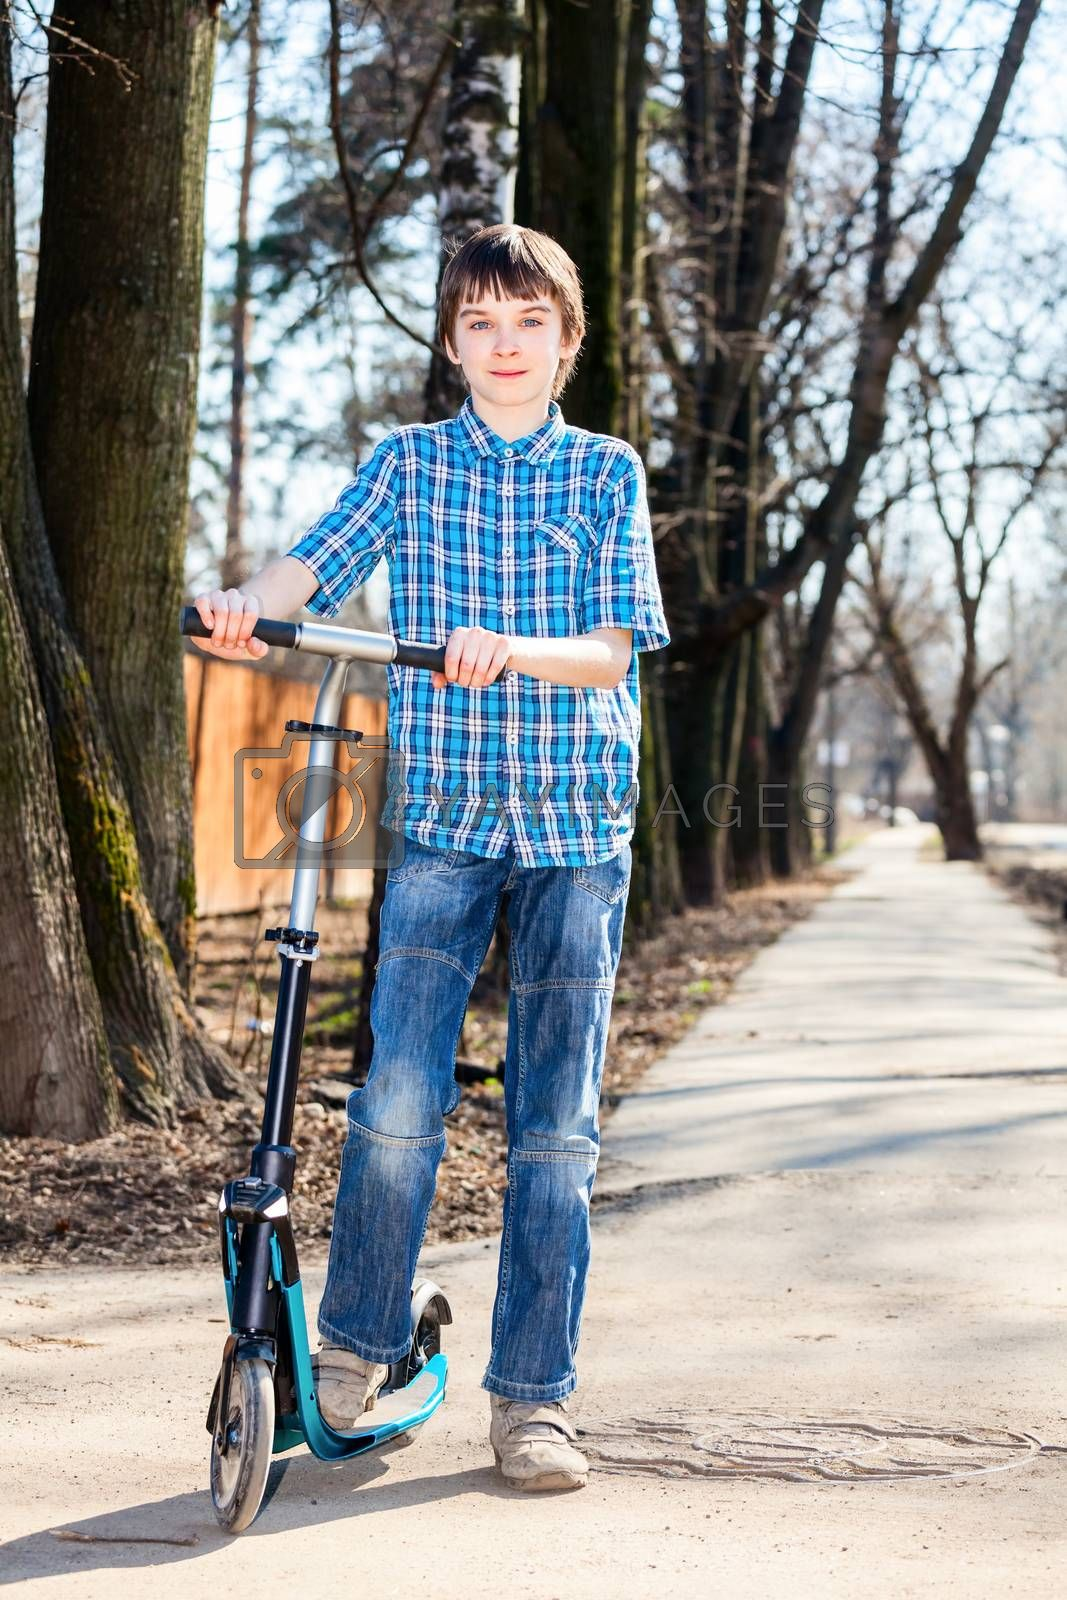 Royalty free image of Boy with kick scooter by naumoid